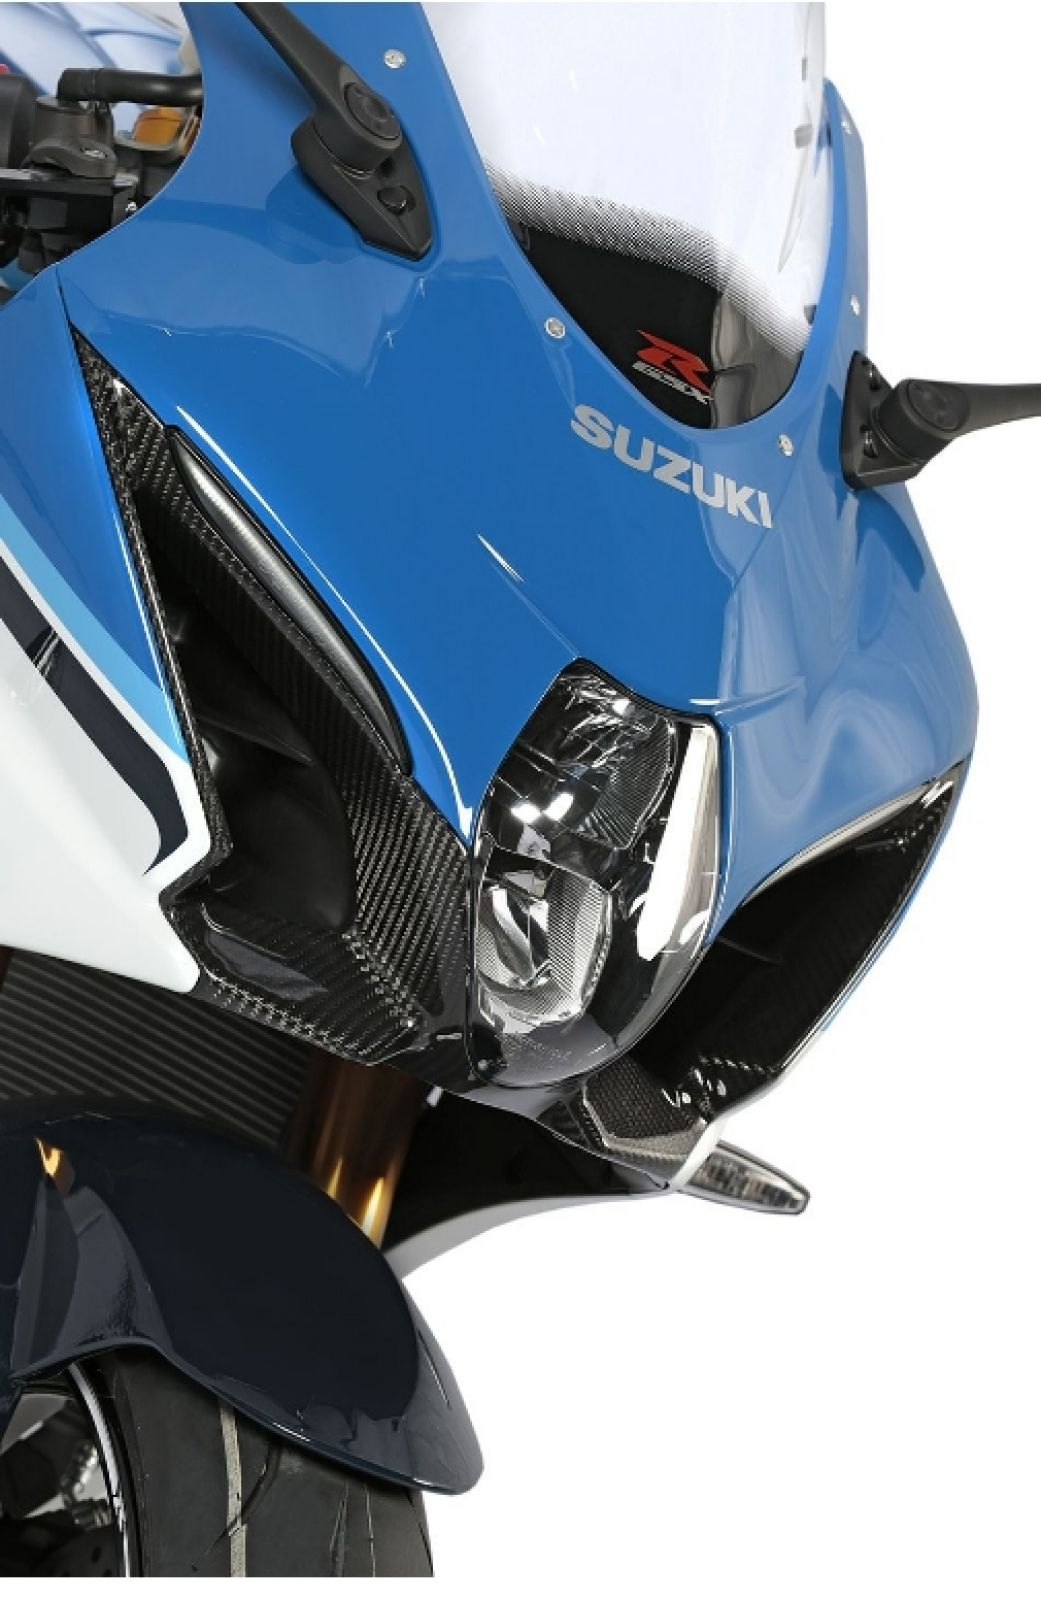 actualité - GSX-R1000R Origins - image d'illustration 8